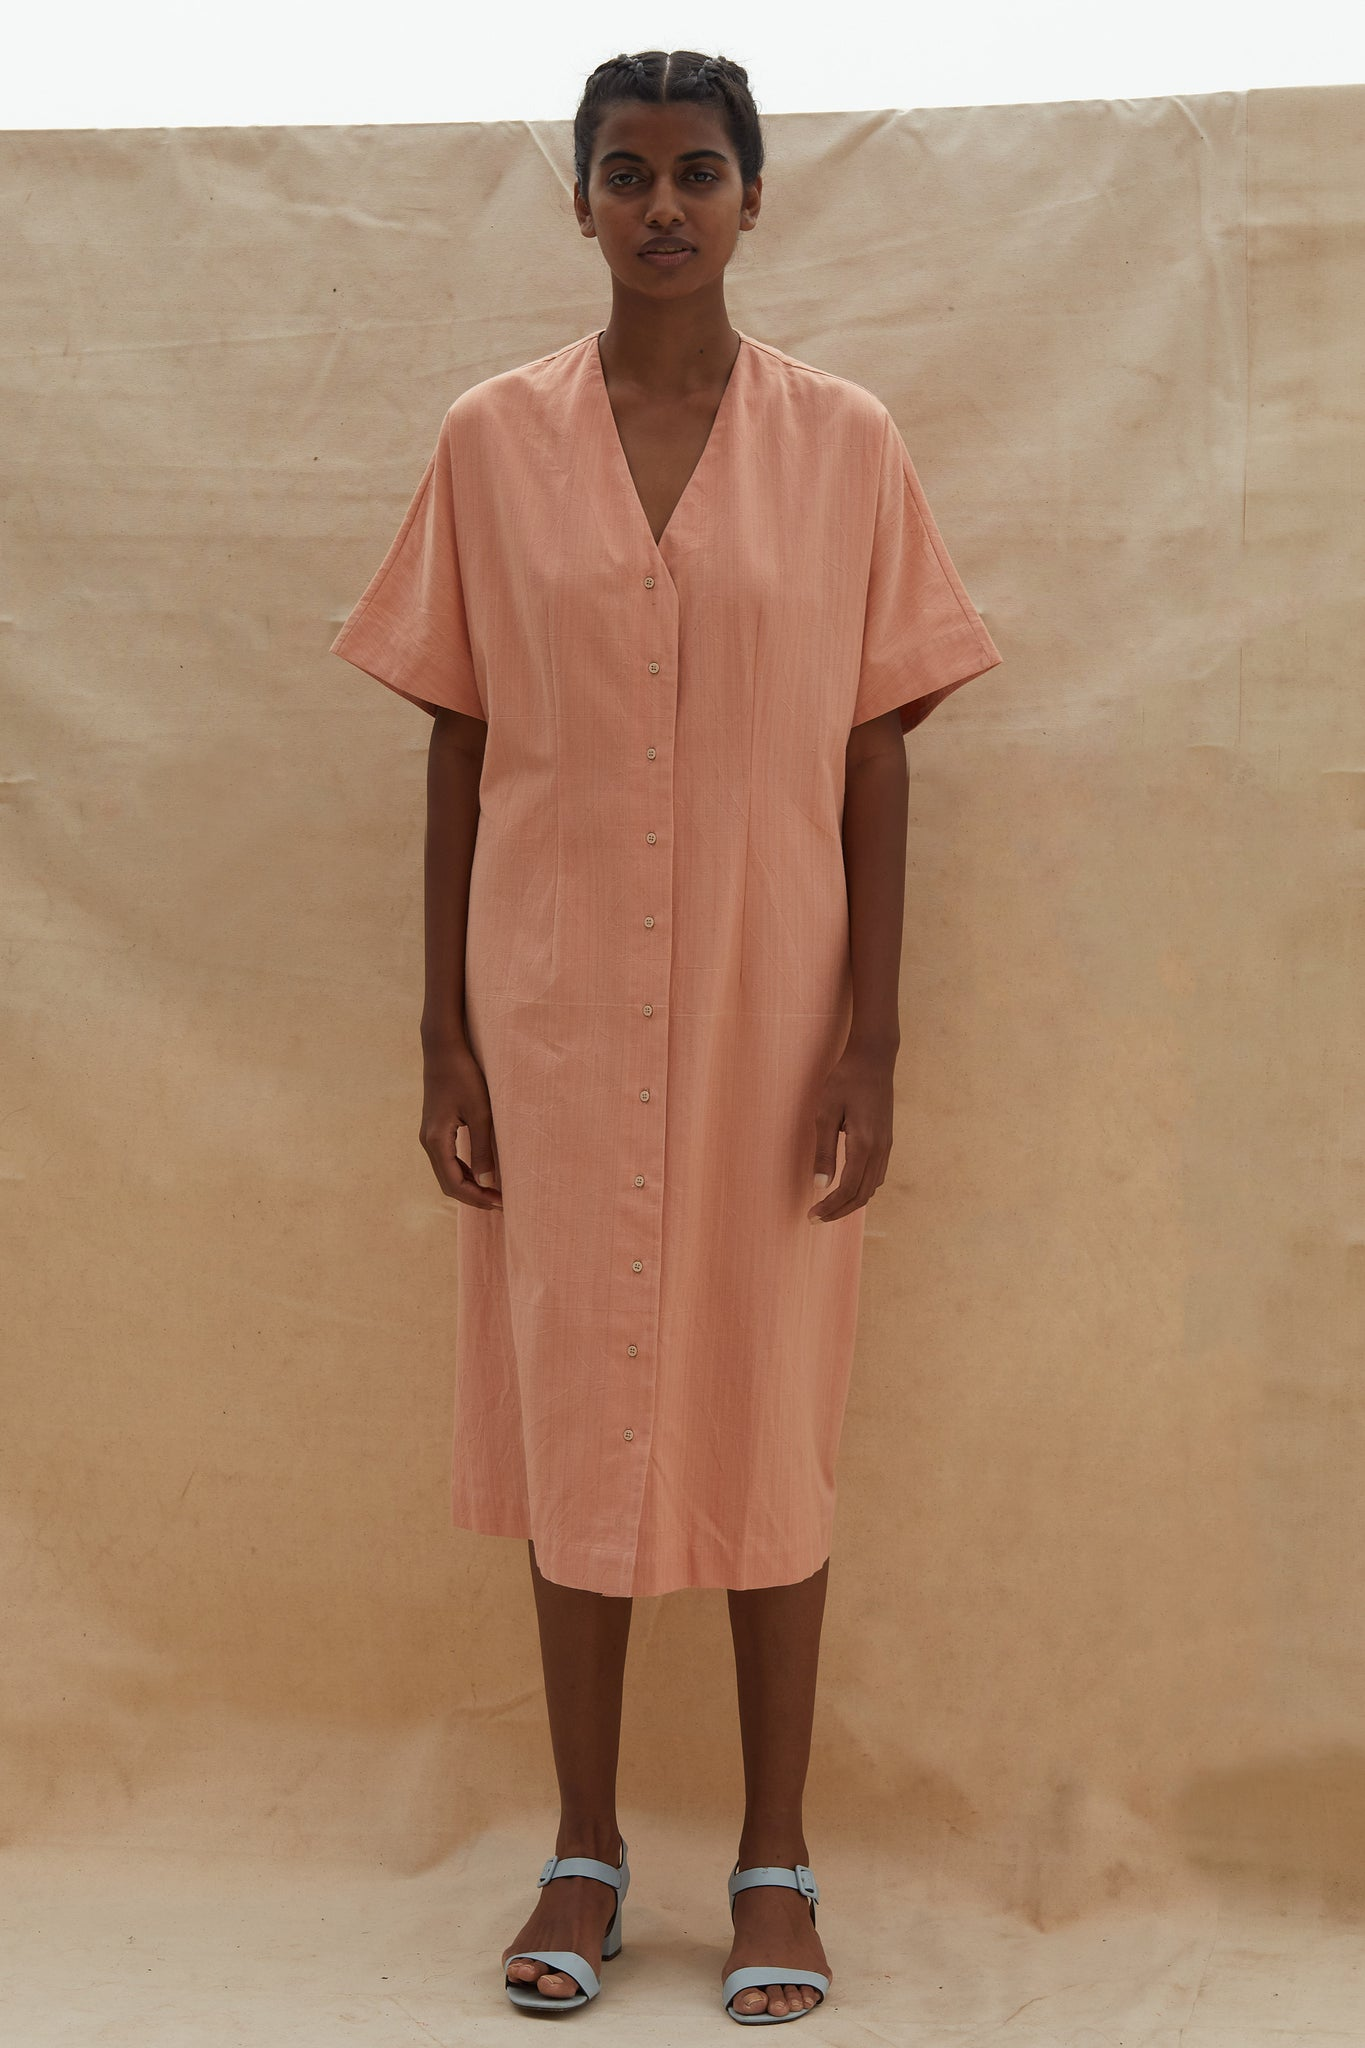 Alexis_handwovencotton_blush_buttondown_dress